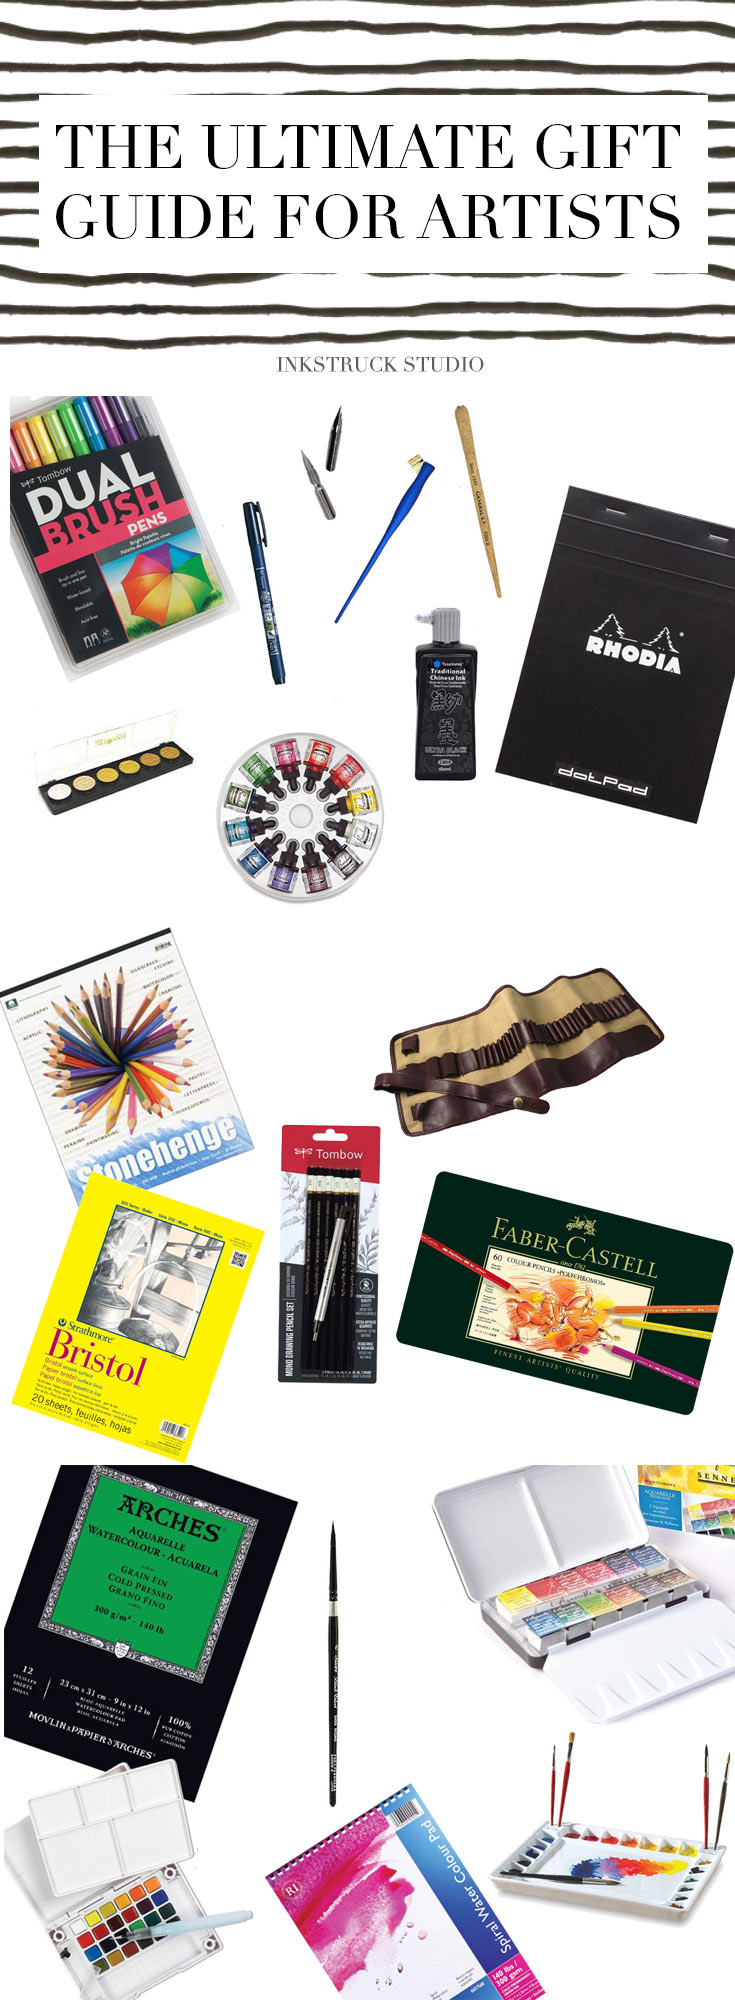 gift ideas for artists-inkstruck studio